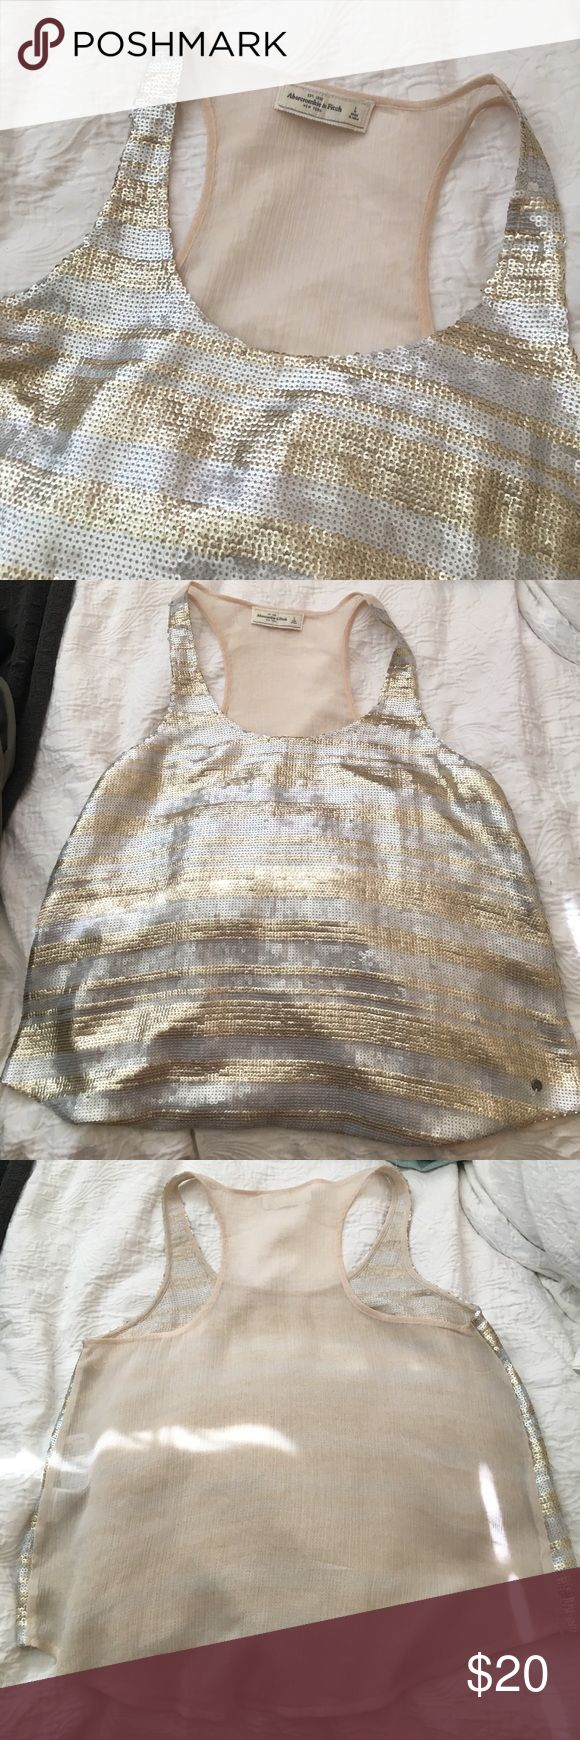 Abercrombie and fitch sequin tank top gold silver Racerback tank top from Abercrombie and fitch. Size l. Sequin all over the front. See through back. Abercrombie & Fitch Tops Tank Tops